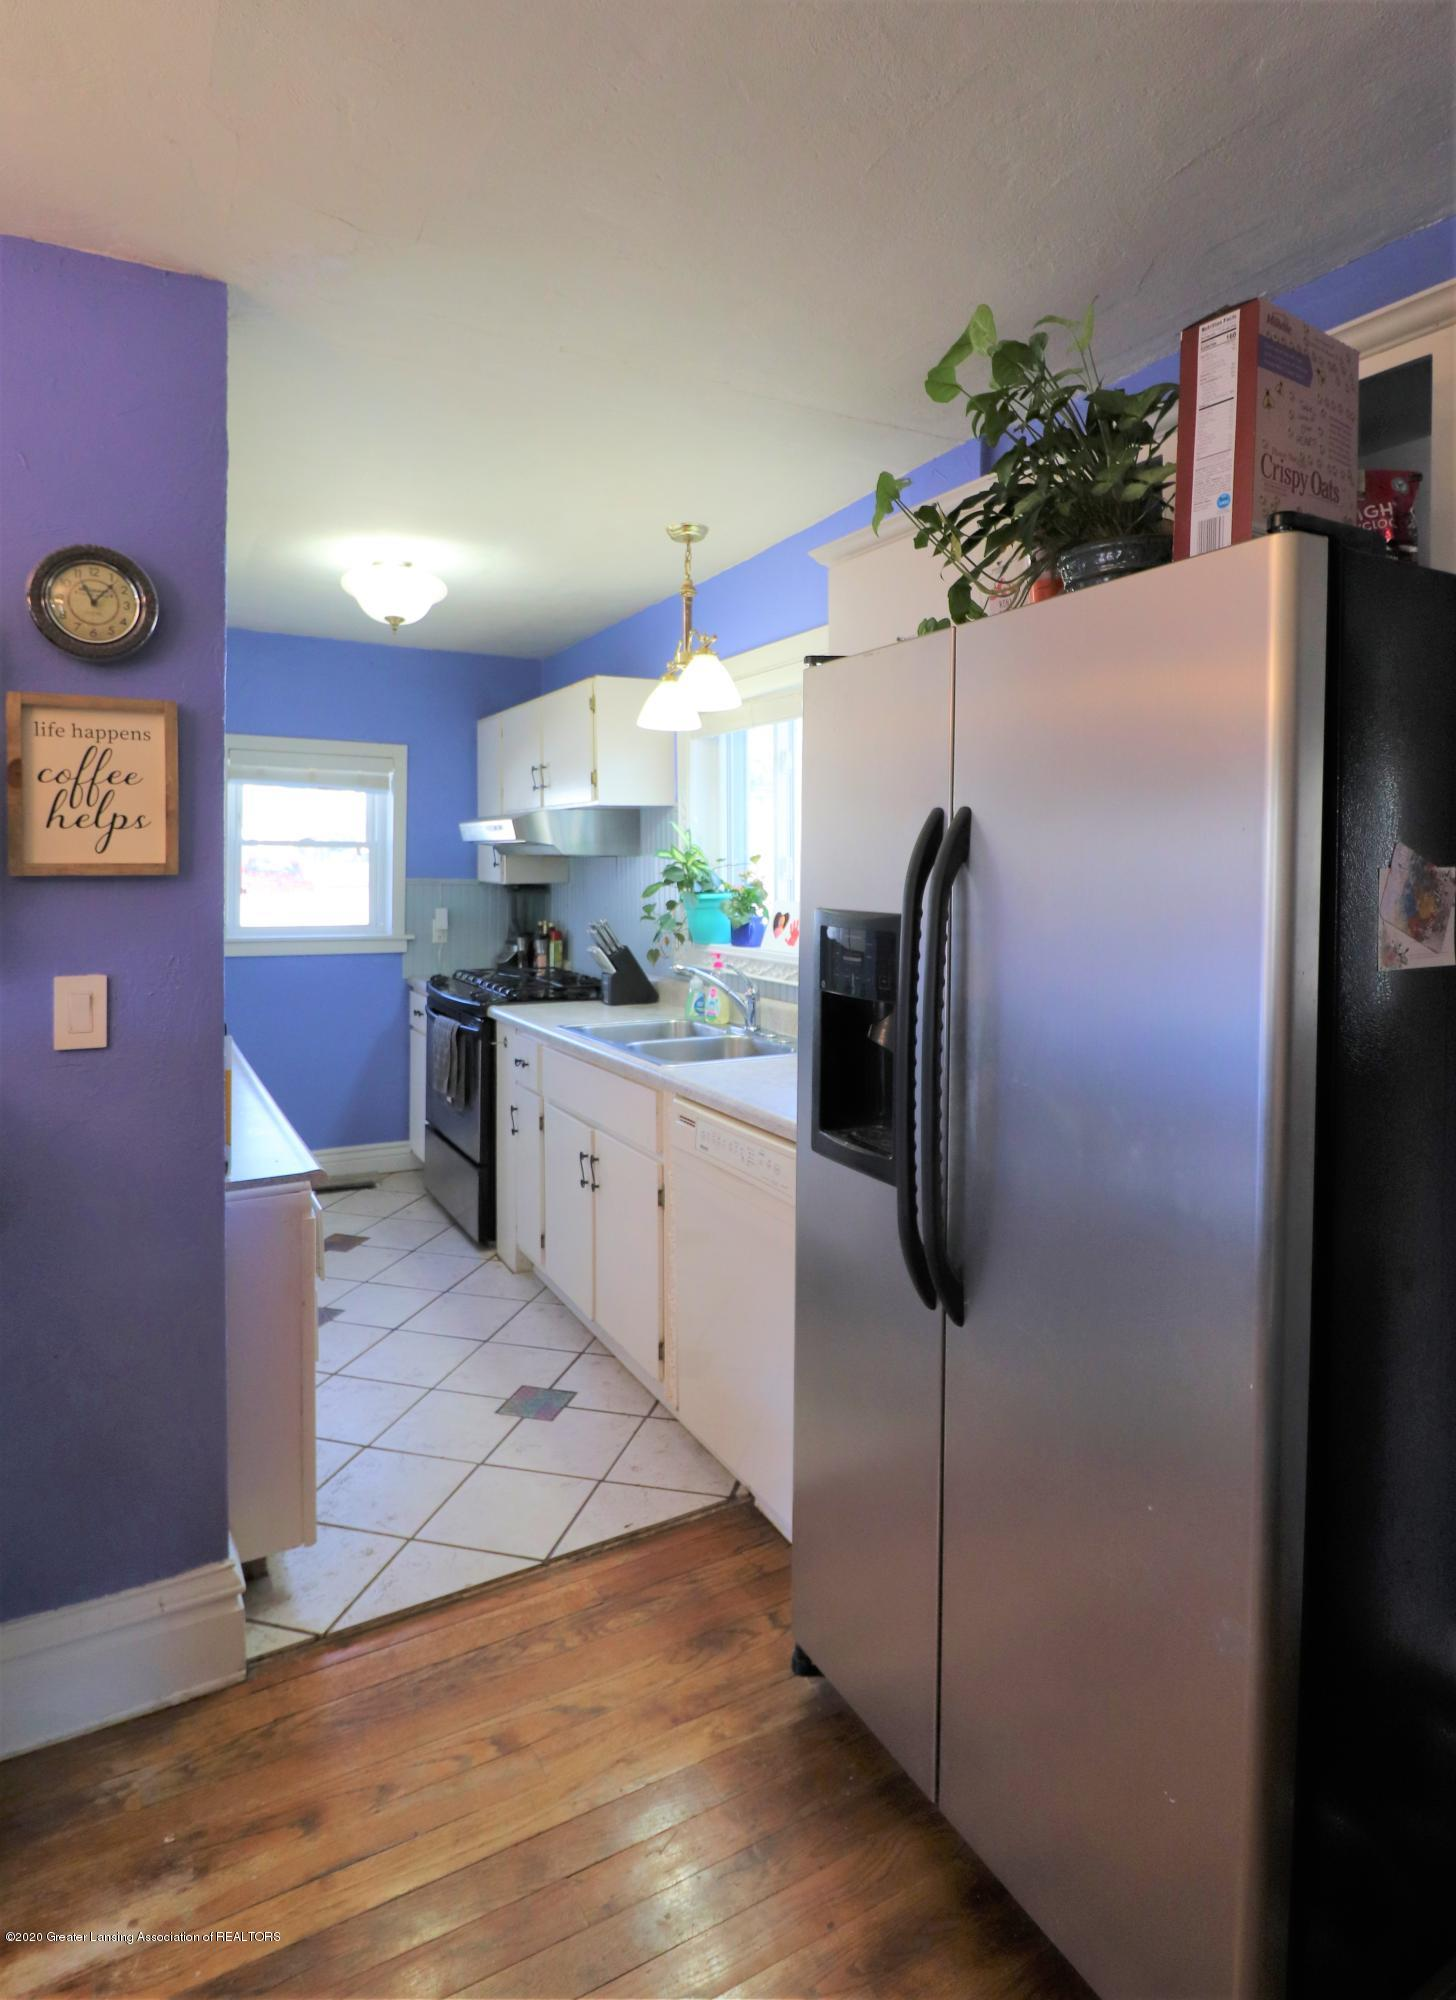 223 N Washington St - 13 Kitchen - 13